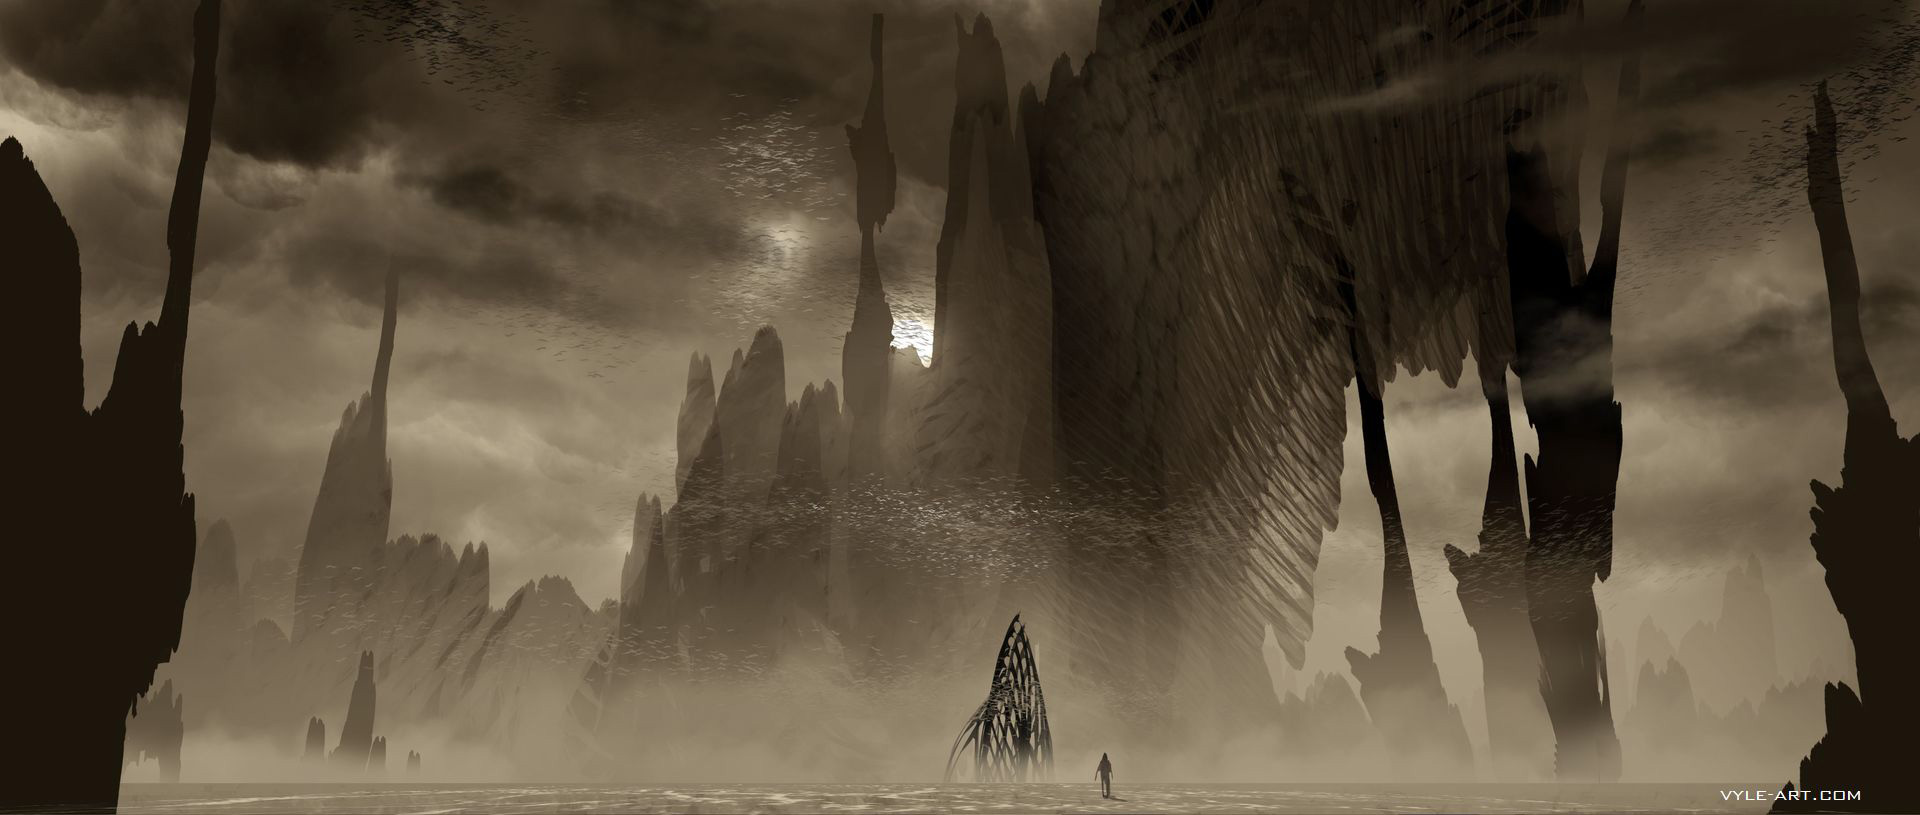 Ender's Game Concept Art by David Levy | Concept Art World